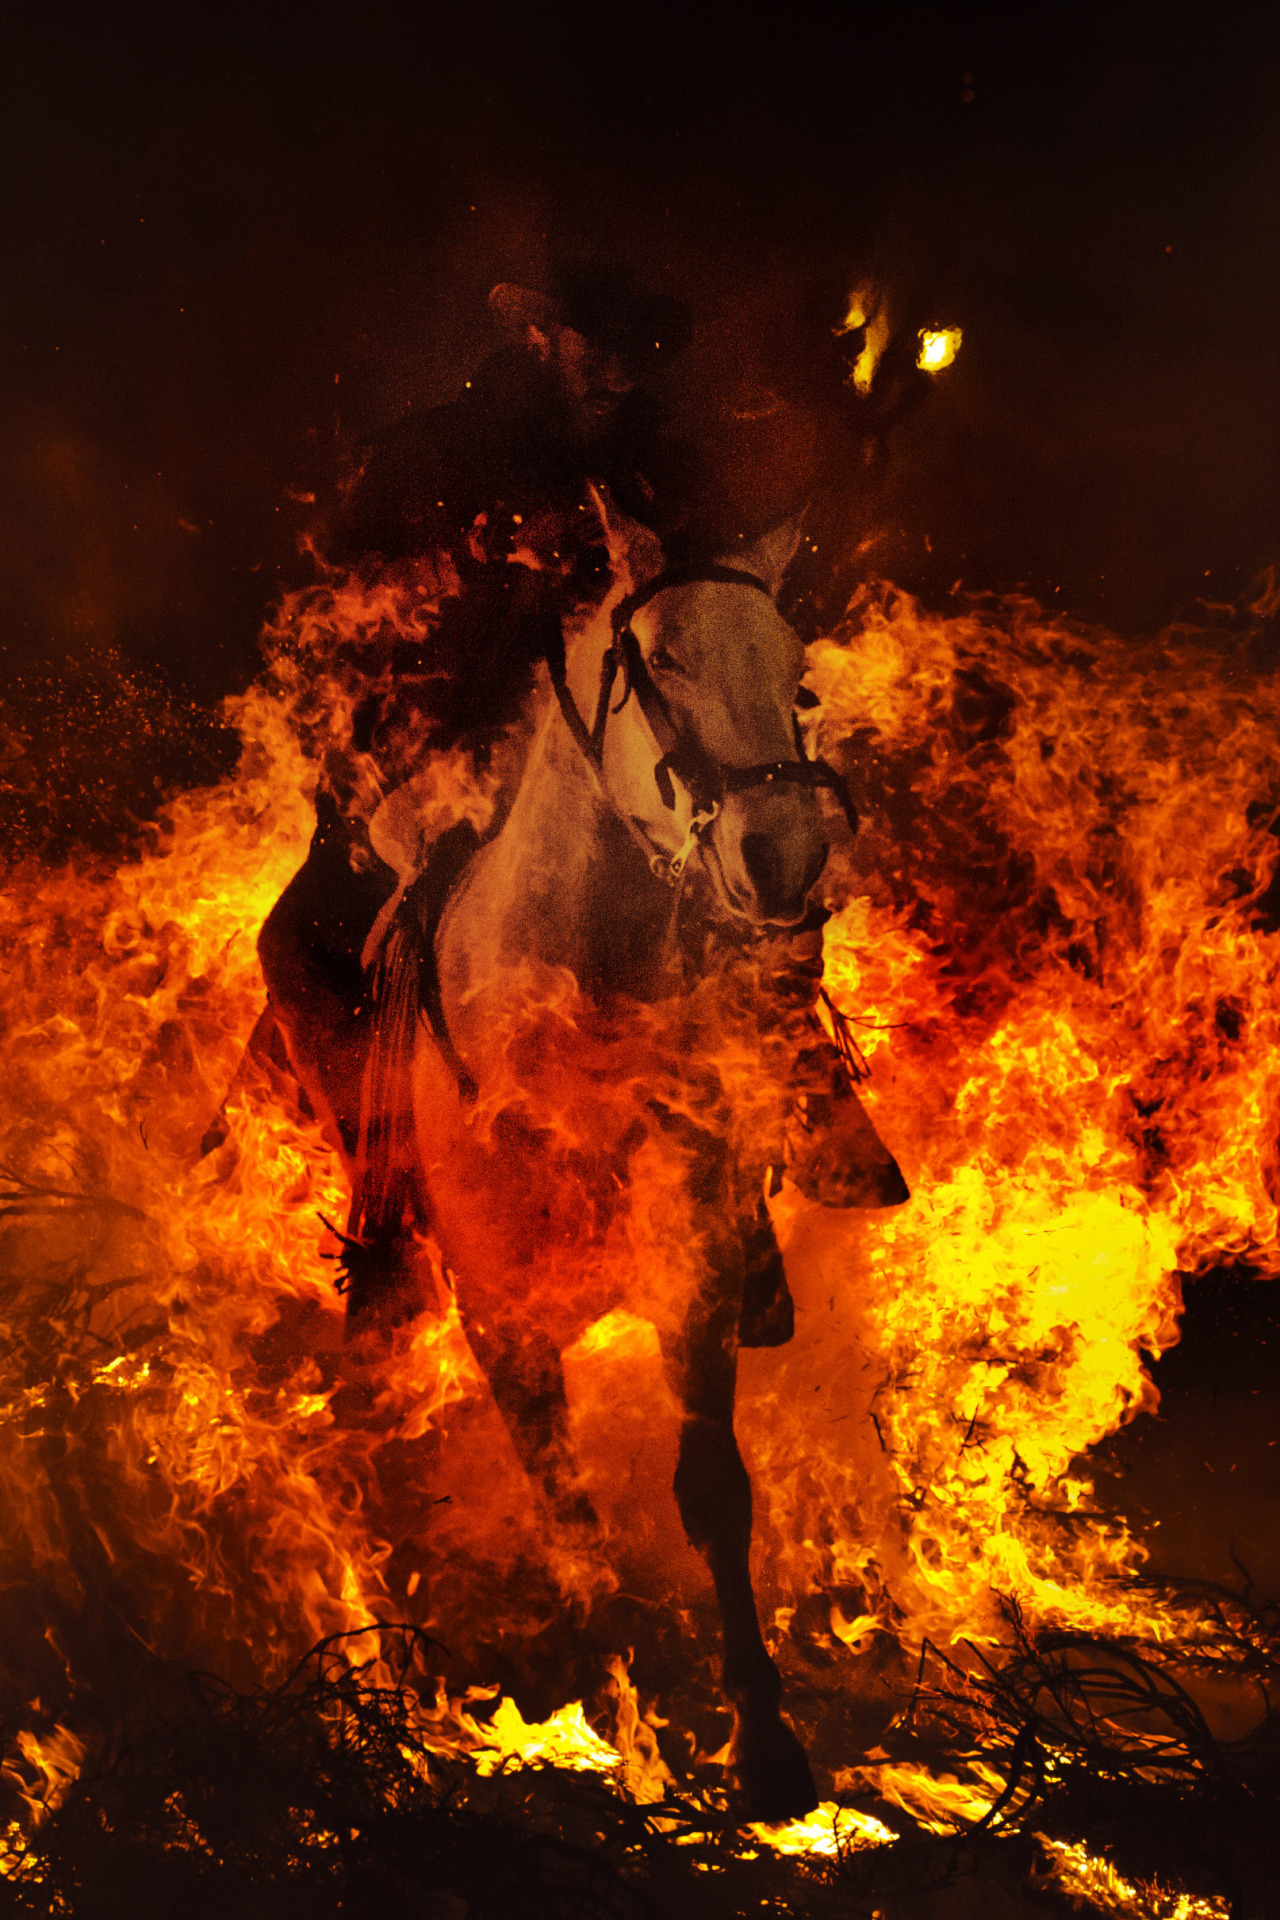 "Horse fire. A man rides a horse through a bonfire in San Bartolome de Pinares, Spain, in honor of Saint Anthony, the patron saint of animals. On the eve of Saint Anthony's Day, hundreds ride their horses trough the narrow cobblestone streets of the small village of San Bartolome during the ""Luminarias"", a traditional festival that dates back 500 years and is meant to purify the animals with the smoke of the bonfires, and protect them for the year to come. Cheval de feu. Un cavalier traverse un feu de joie avec son cheval dans la petite ville espagnole de San Bartolomé de Pinares en l'honneur de Saint Antoine, le saint patron des animaux. Des centaines de cavaliers sont venus défier les bûchers disséminés dans la ville de San Bartolome durant la fête des ""Luminarias"". Cette fête est une tradition païenne datant de plus de 500 ans et permet aux animaux défiant les flammes de se purifier et de se protéger des maladies et autres malheurs dans les années futures.  PHOTOGRAPHER : AP PHOTO/DANIEL OCHOA DE OLZA"